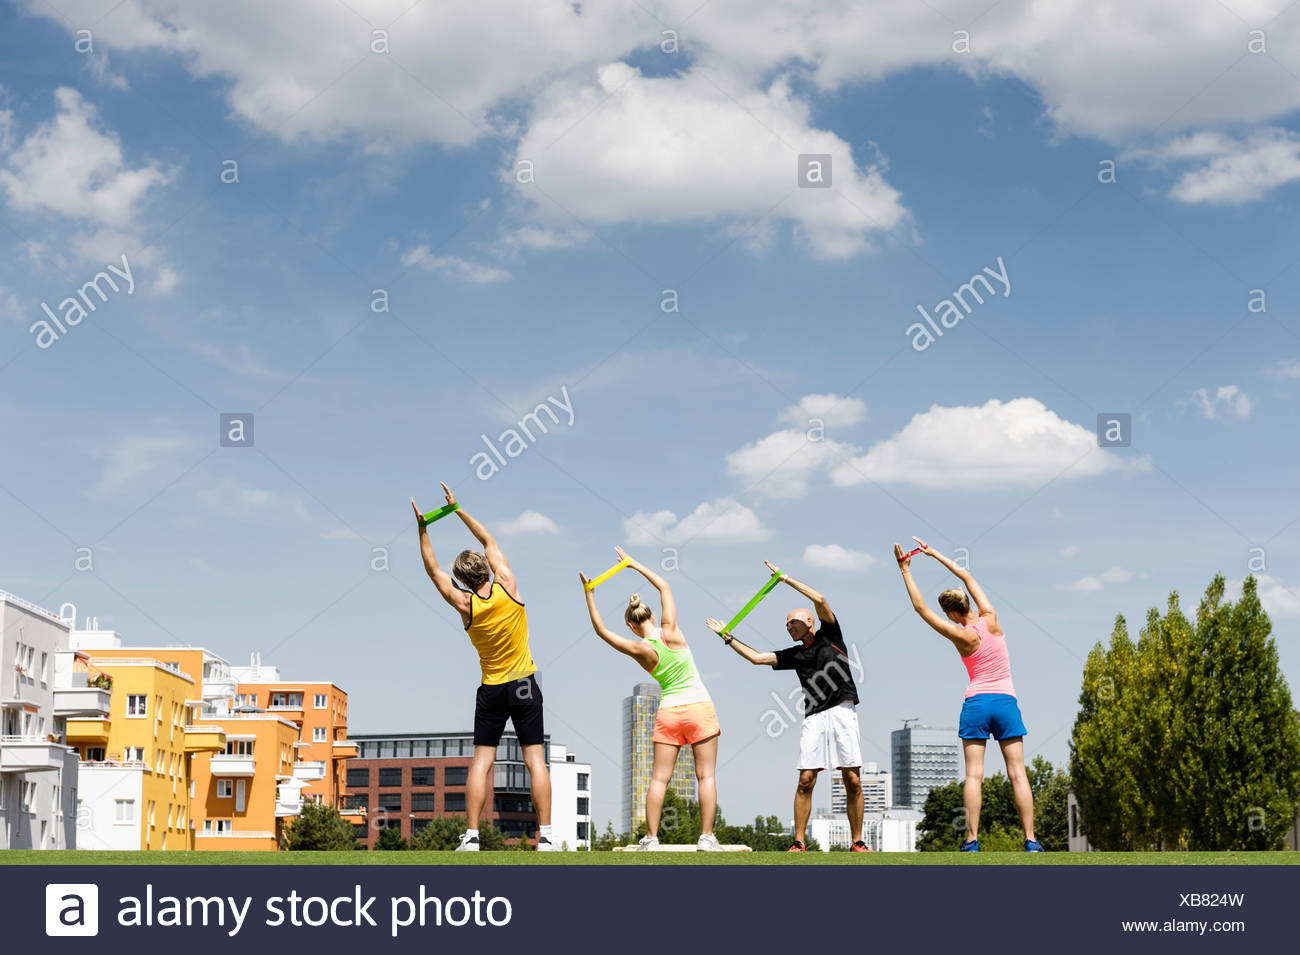 Four people exercising with rubber bands in park - Stock Image